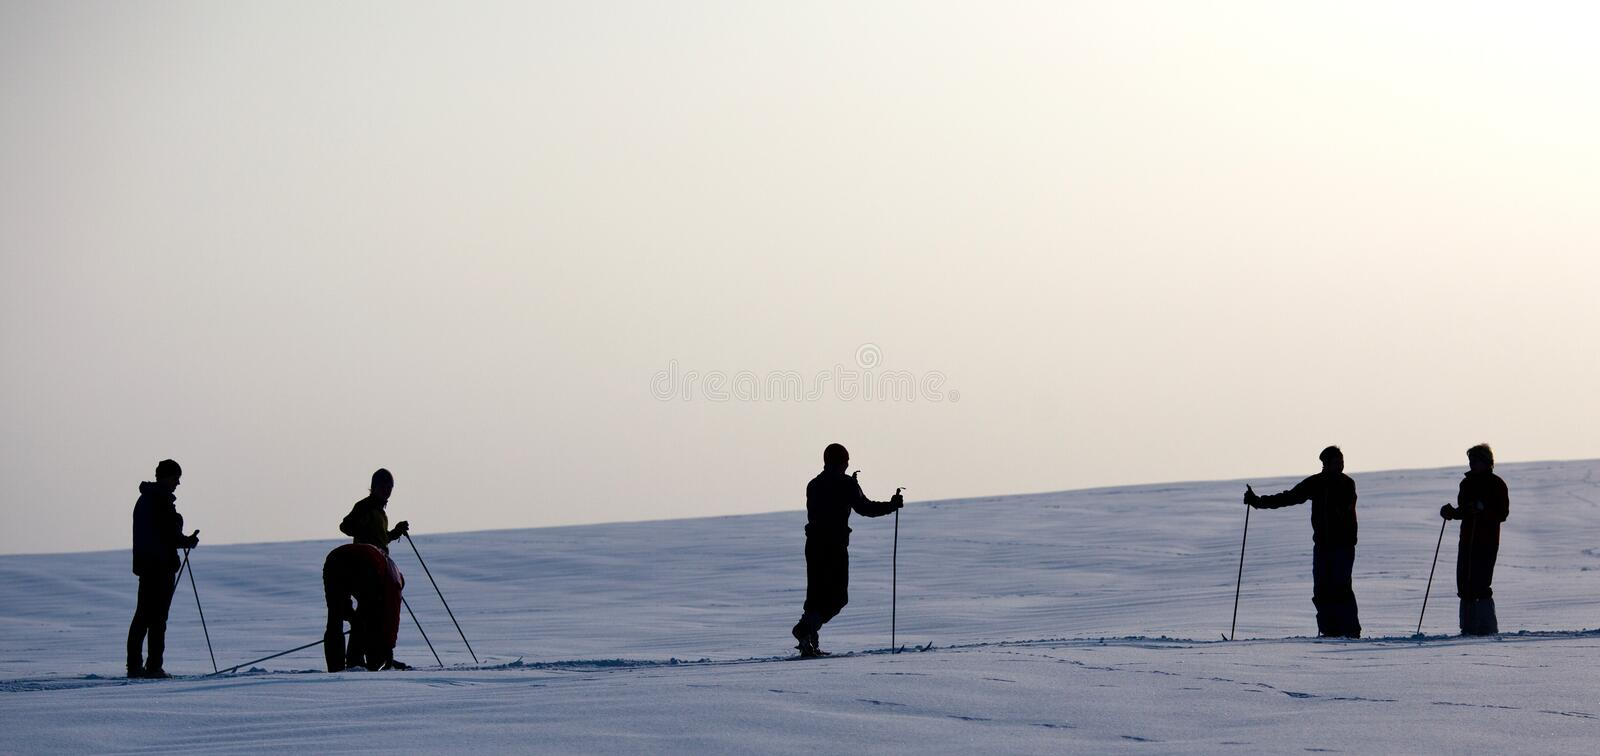 Download Skiers stock image. Image of slope, silhouette, snowboard - 15428369